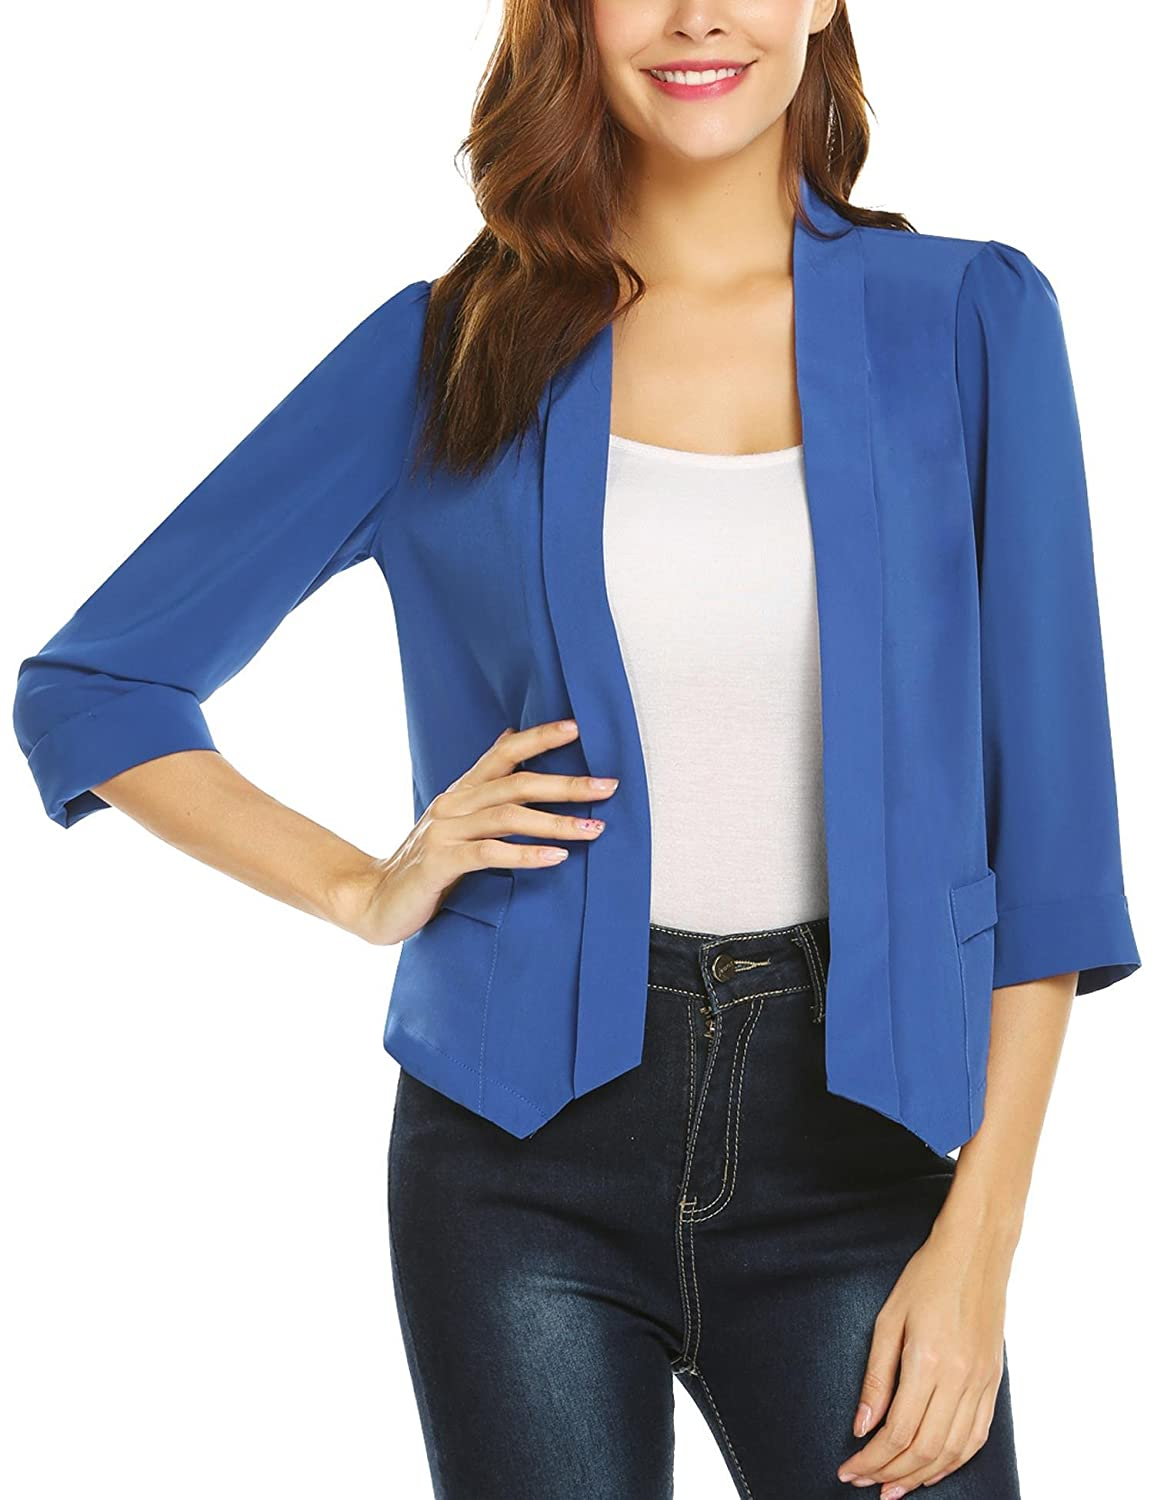 01327e83af4 Casual 3 4 patchwork sleeve relaxed fit solid color lightweight versatile  thin blazer jacket with ...